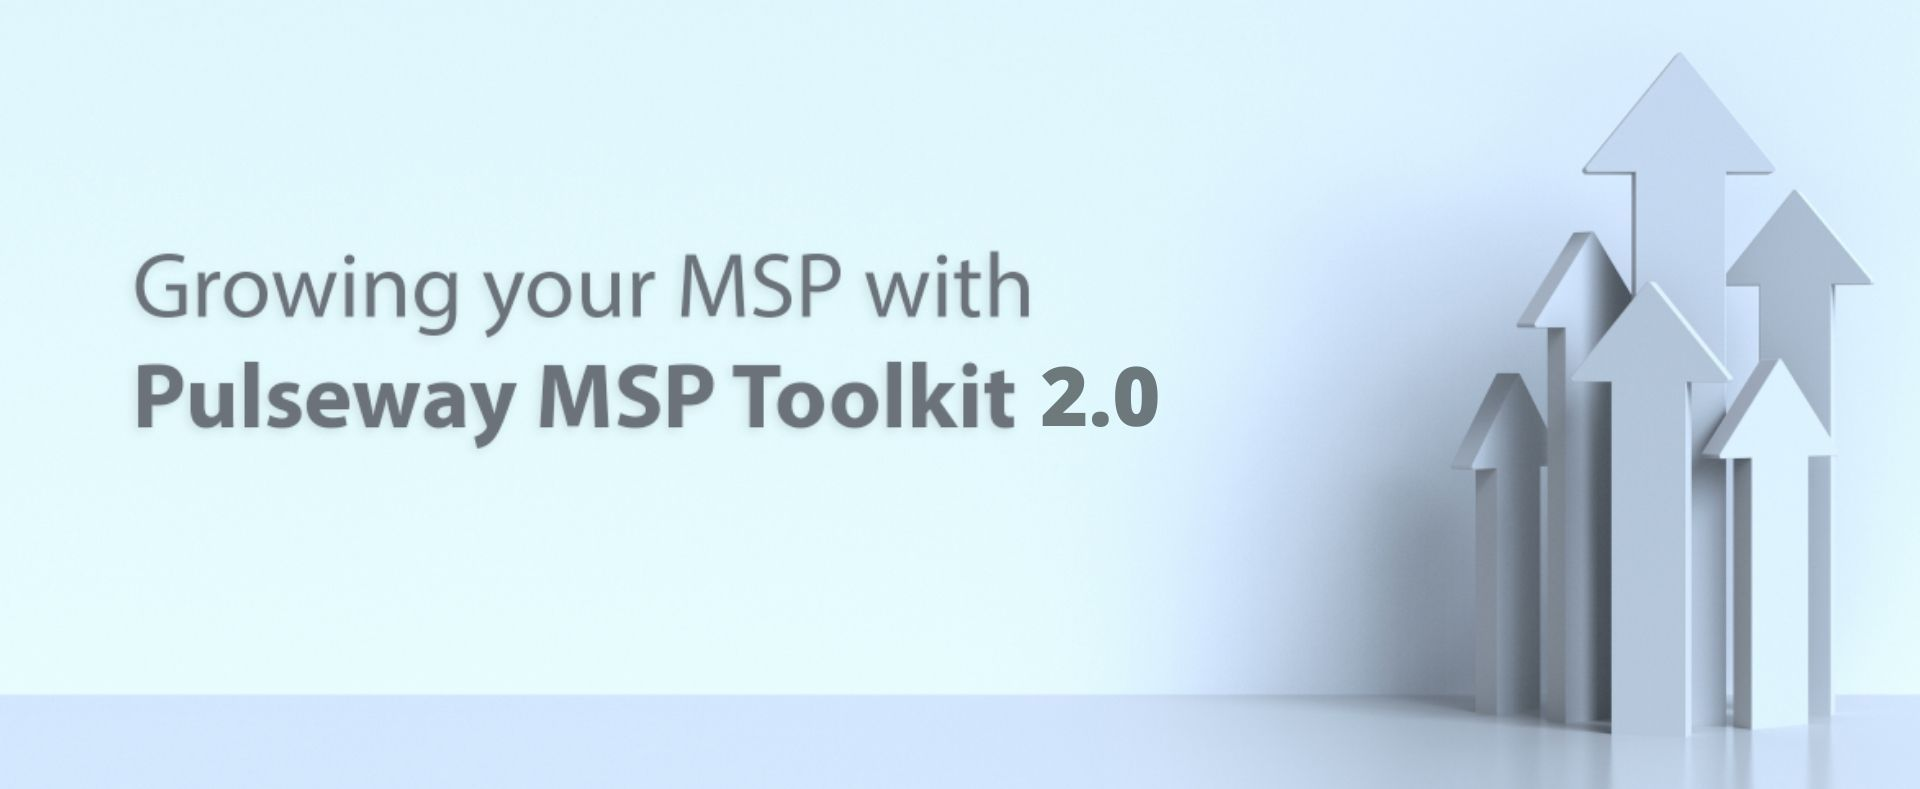 Pulseway Announces MSP Toolkit 2.0, A Growth Platform Designed to Help MSPs Be More Profitable